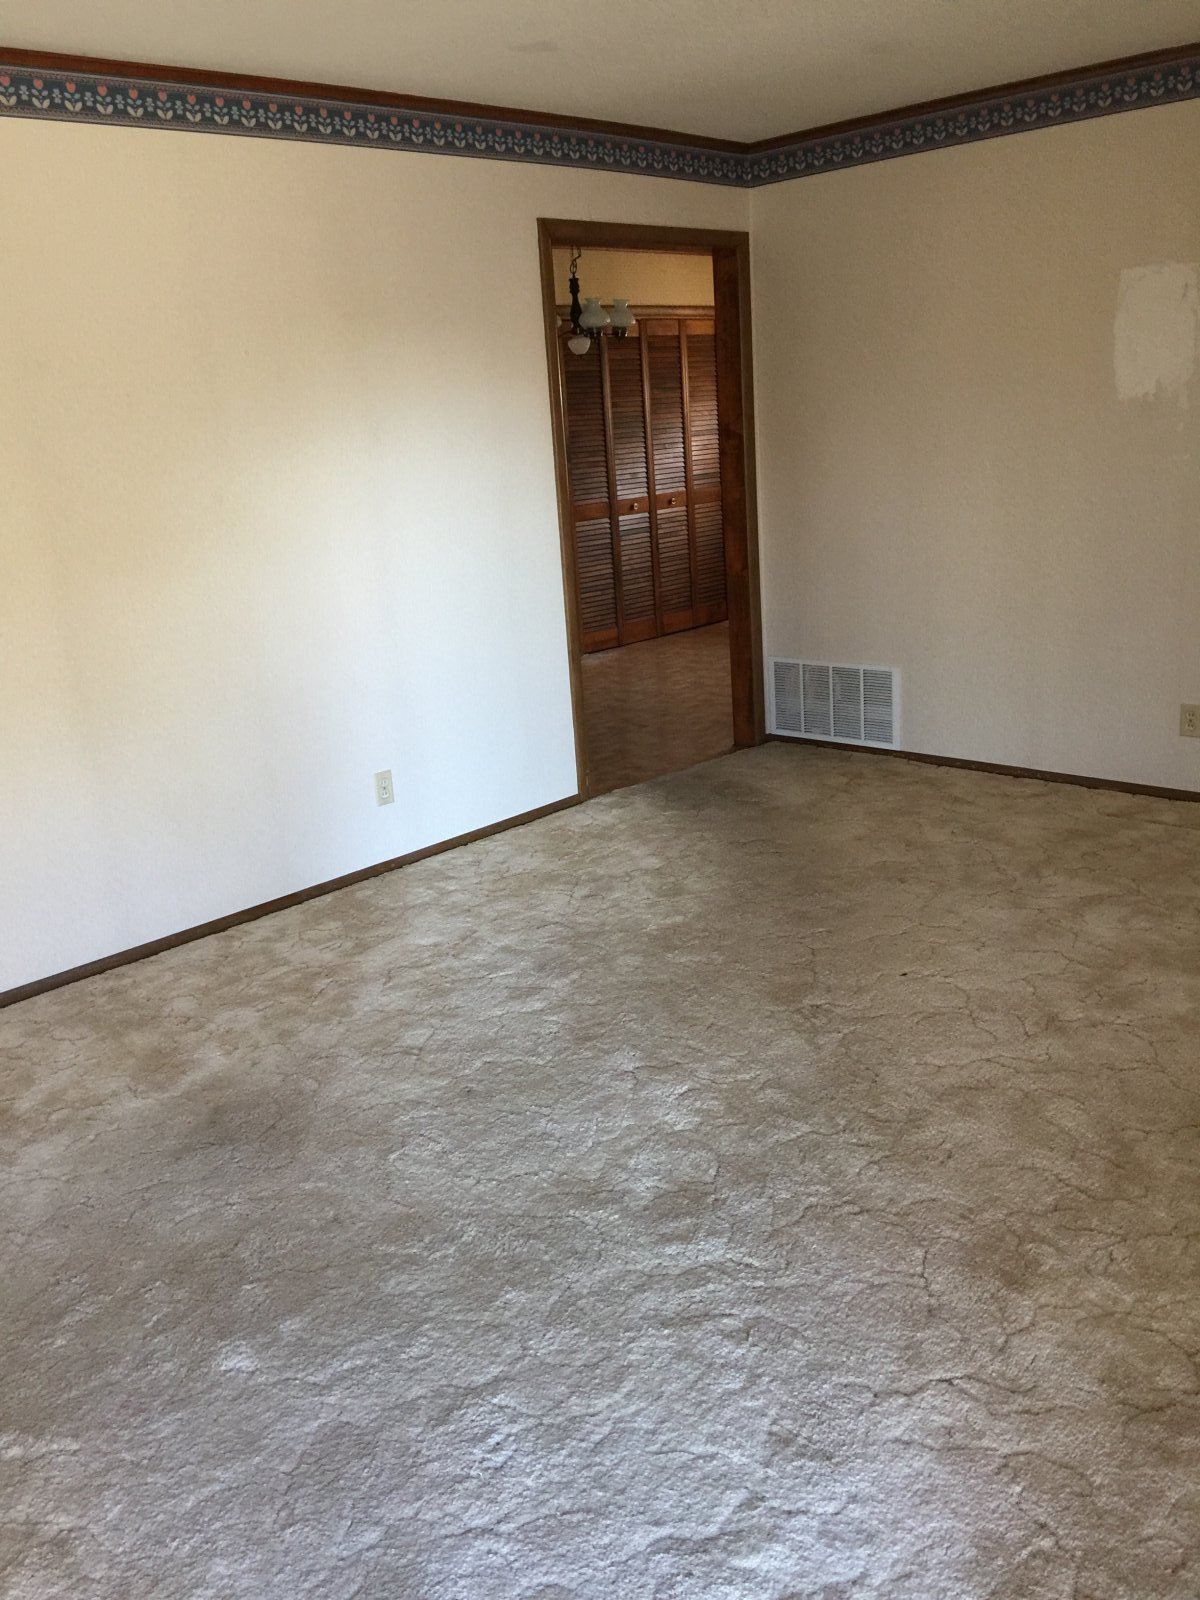 Previous  Next  Rent to Own Homes Oklahoma City  This property is on a  large corner lot featuring 2 bedrooms  Rent to Own Homes Oklahoma City   Key Properties OKC Sells Houses. Rent To Own Homes In Oklahoma City Area. Home Design Ideas